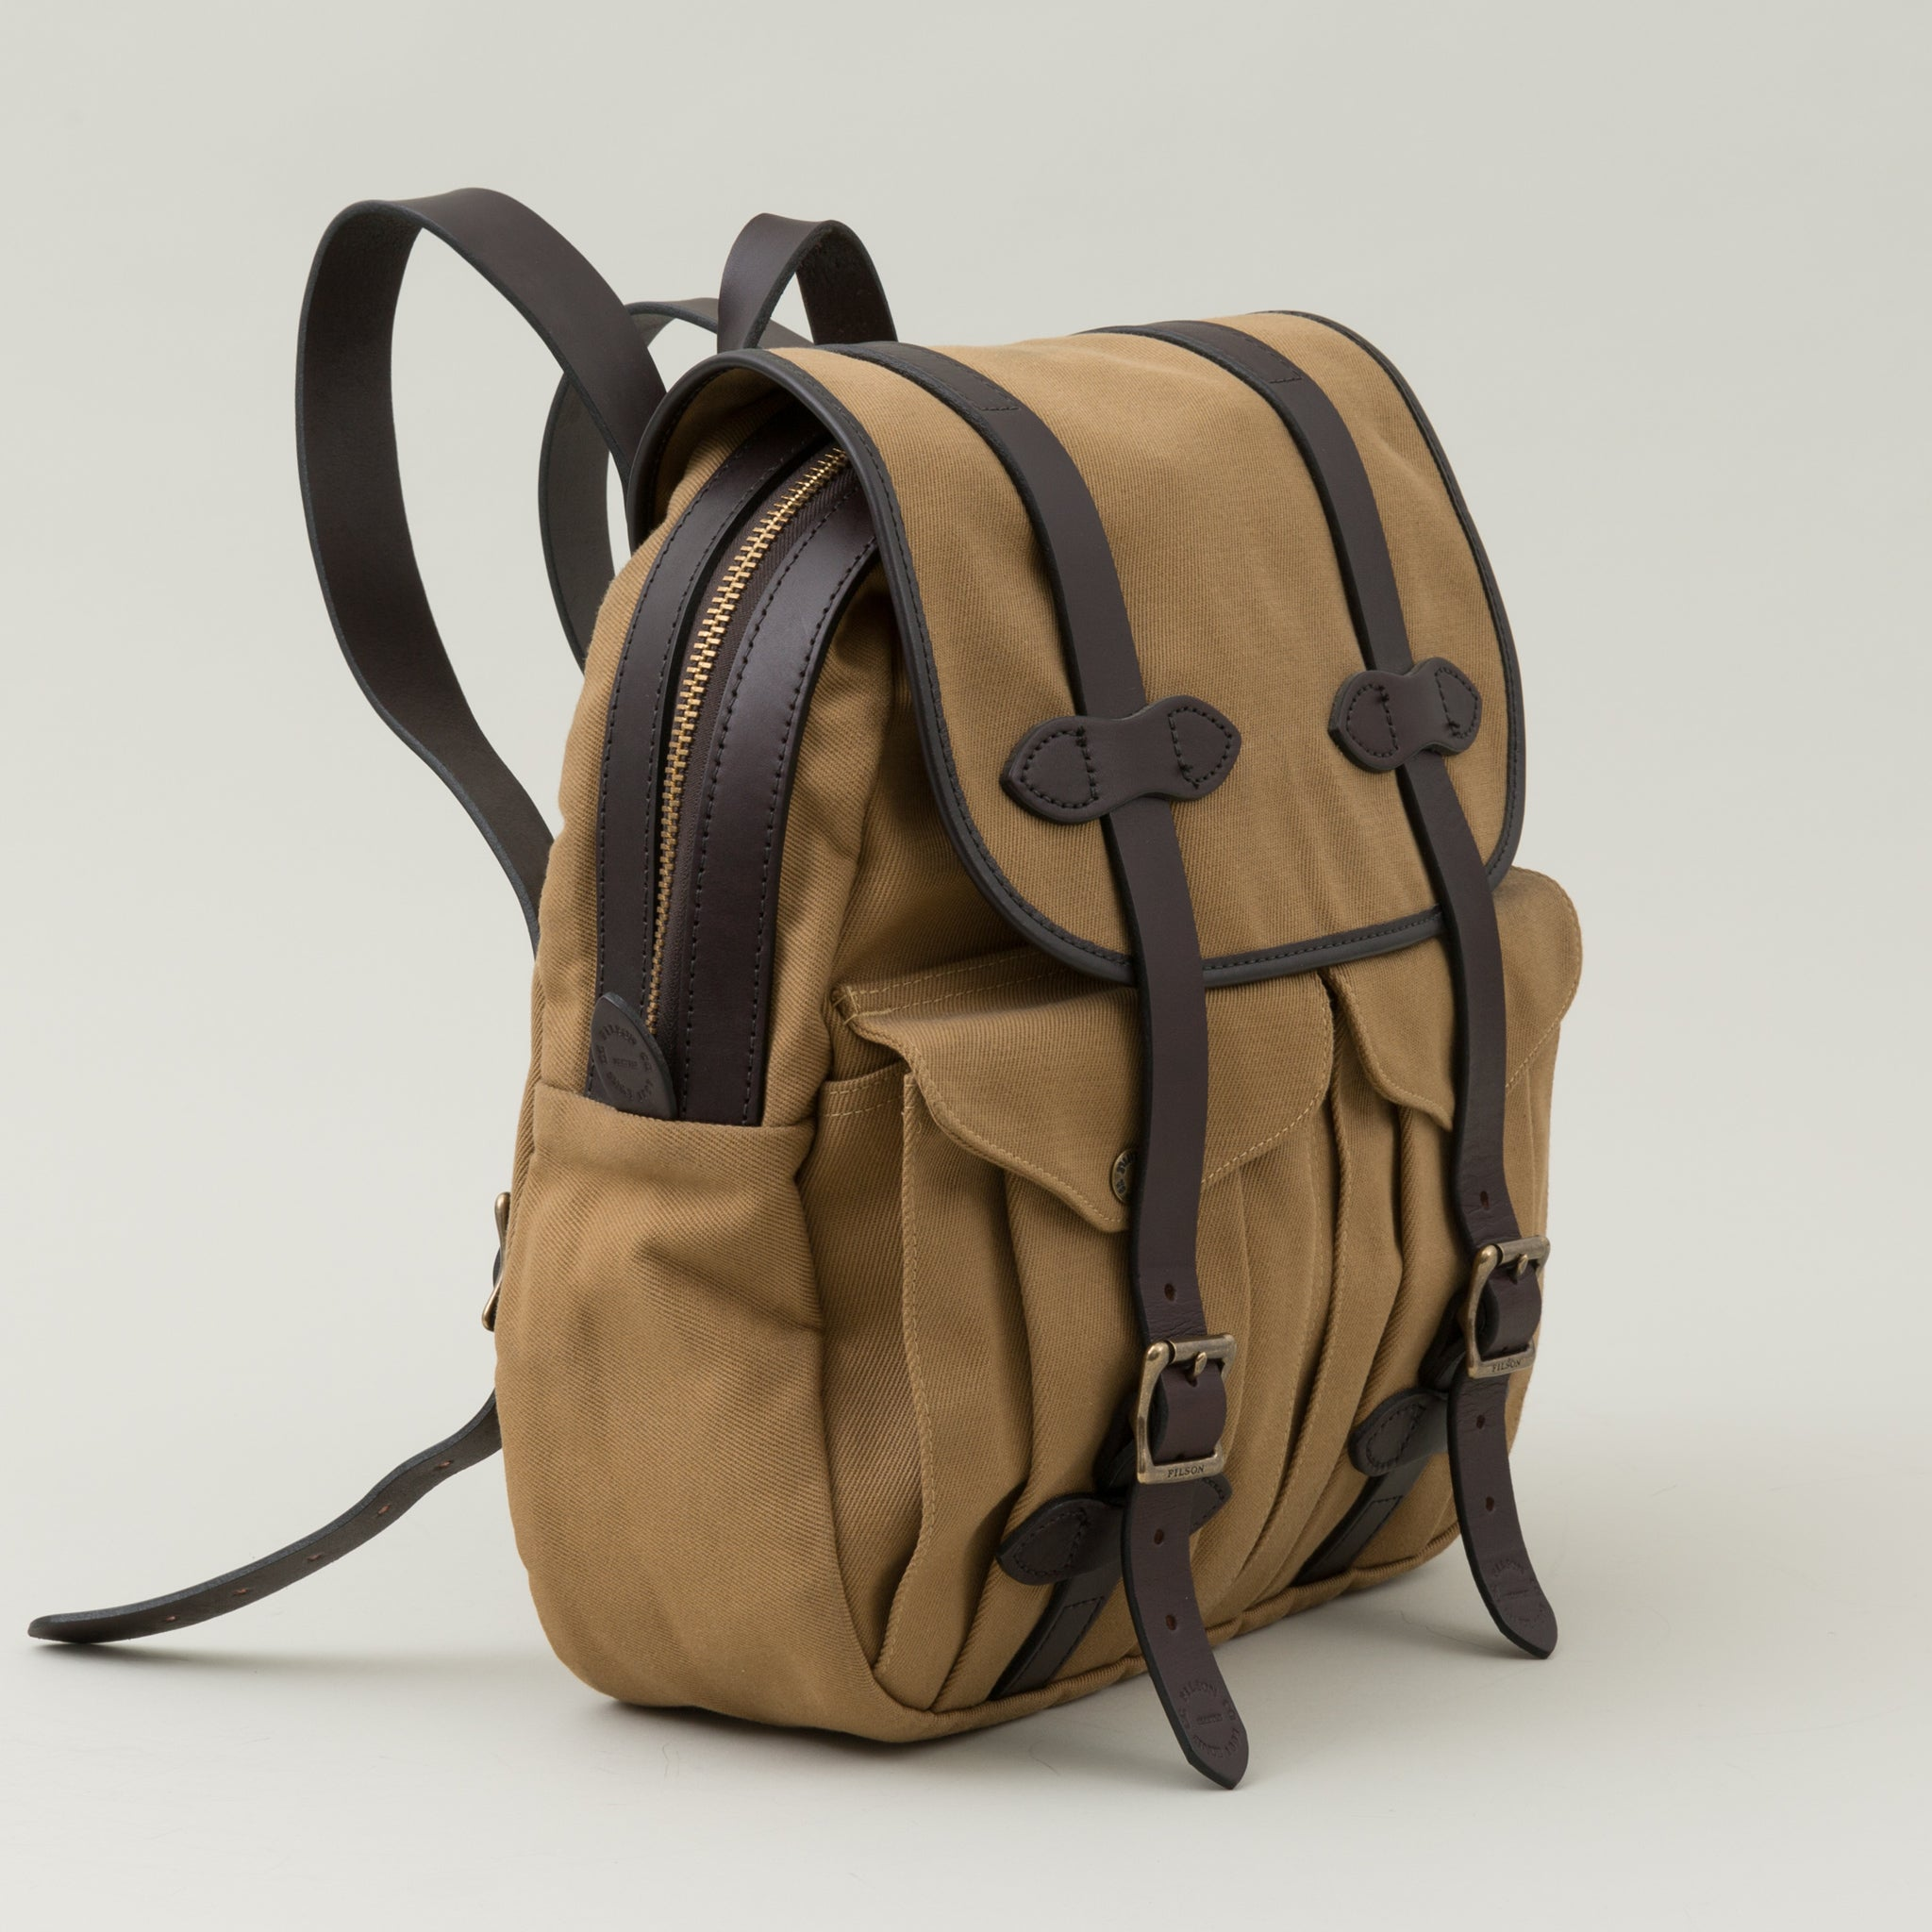 Rugged Twill Rucksack, Tan - The Stronghold 47d8bab01f